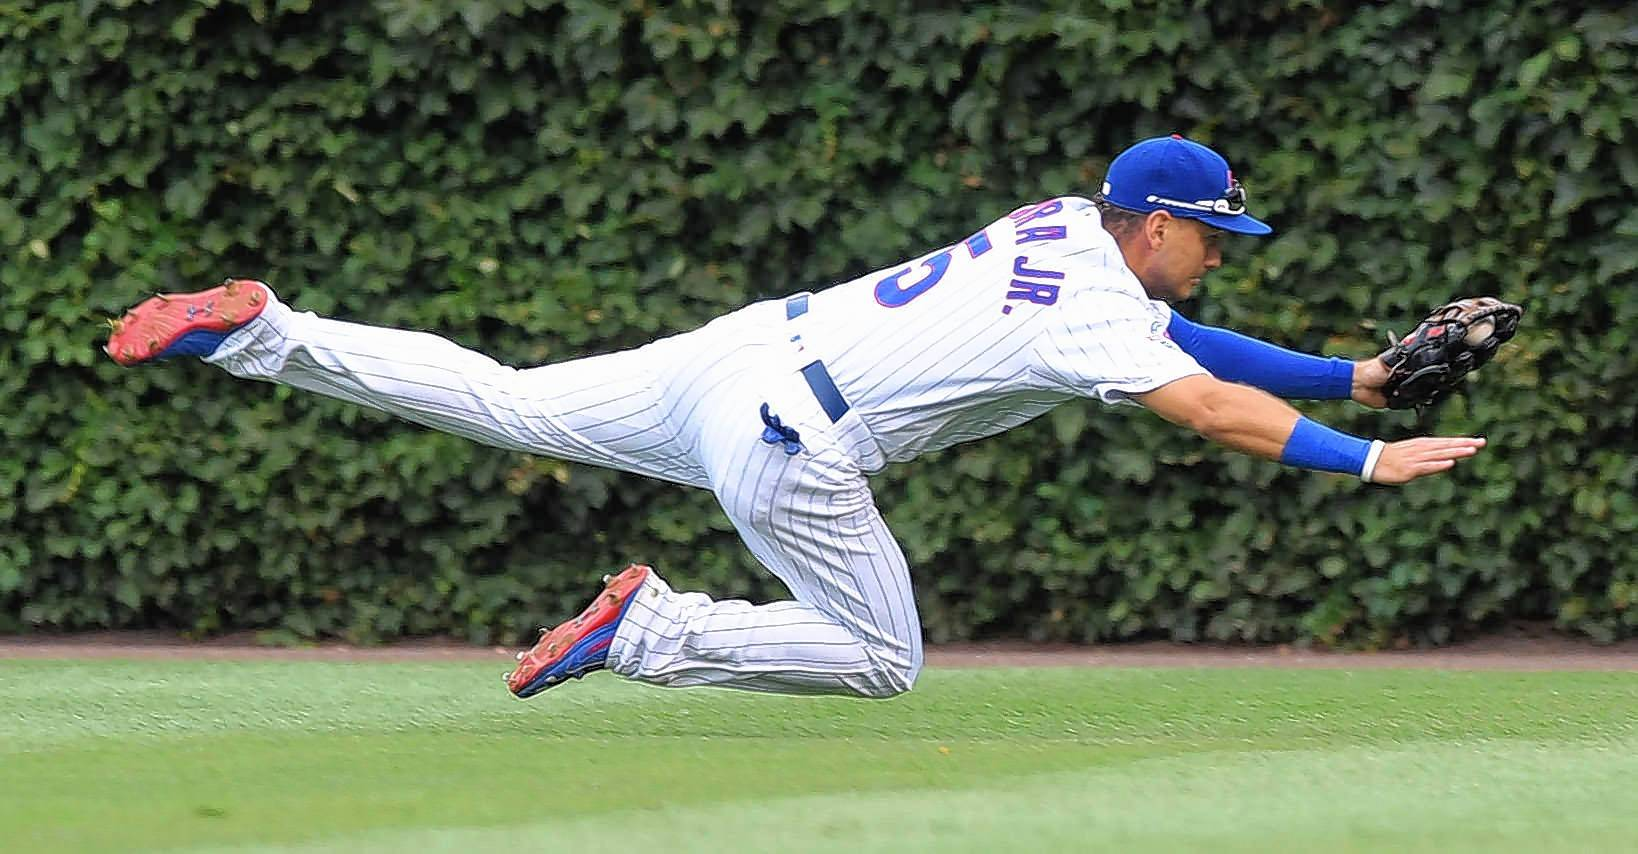 Even though he did a good job after his first big-league call-up, Chicago Cubs outfielder Albert Almora was back on his way to Class AAA Iowa Friday after the team activated Dexter Fowler off the disabled list. But Almora impressed during his time with the club, especially with his defense.